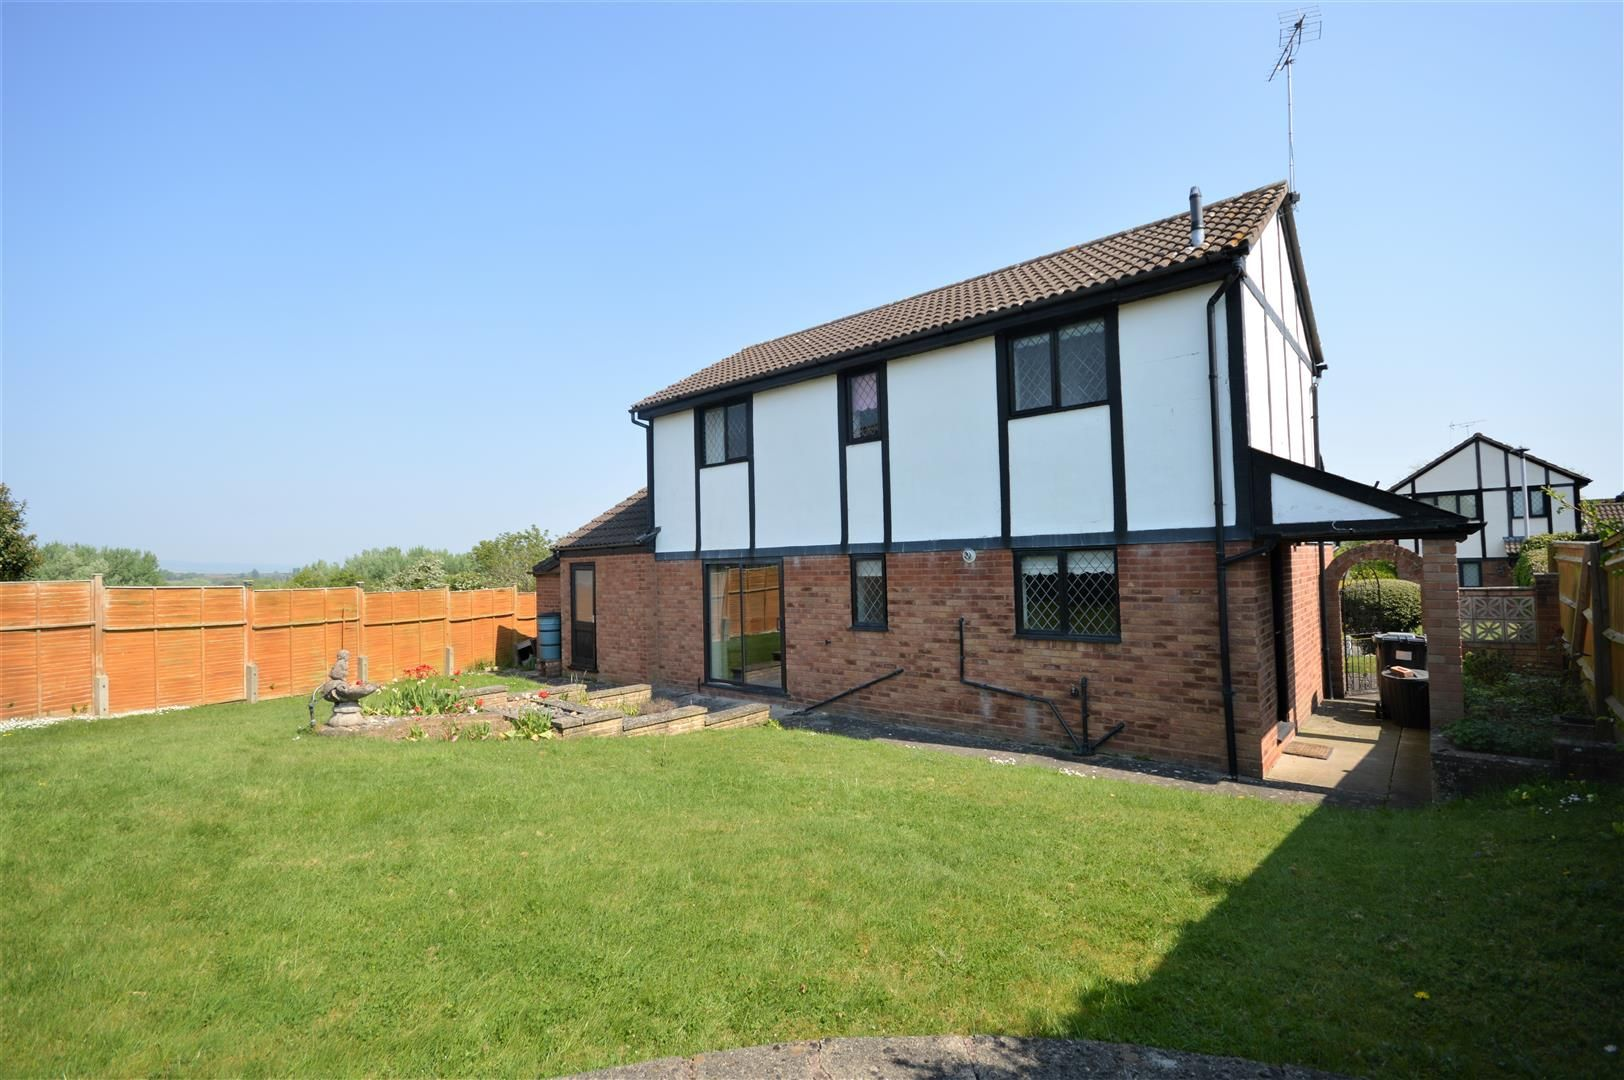 3 bed detached for sale in Leominster 11